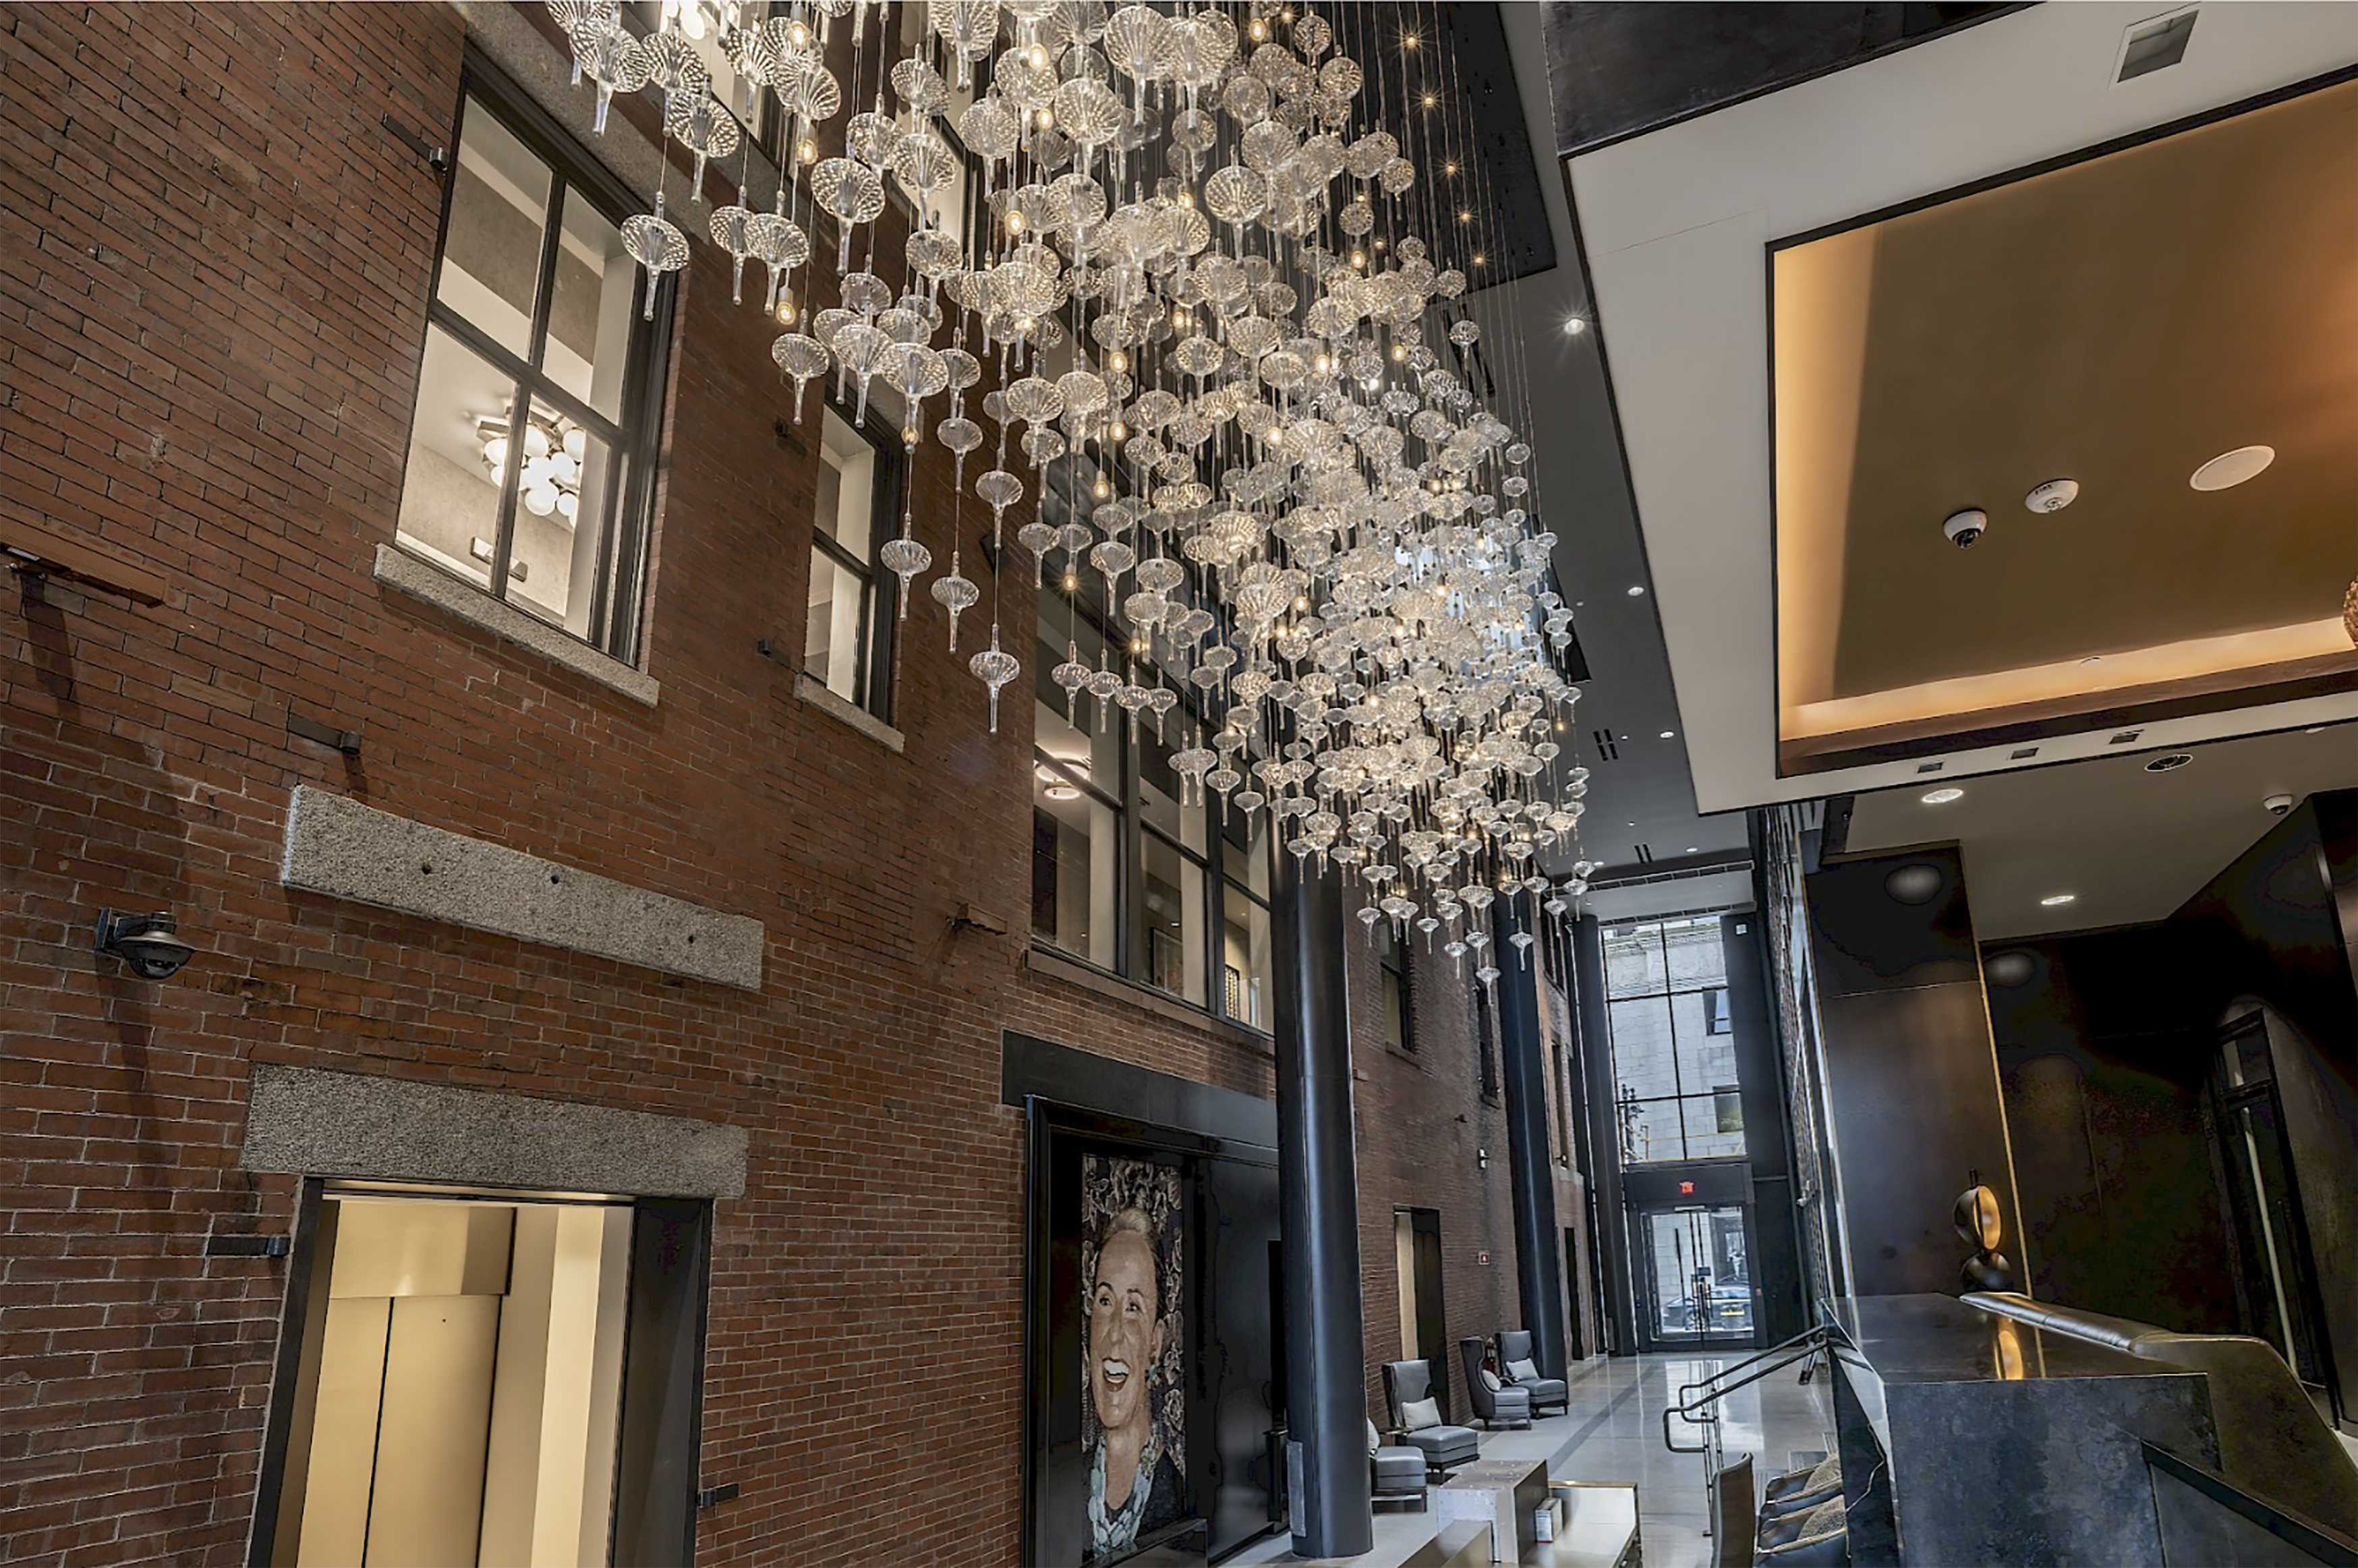 The lobby of The Beatrice, a new hotel that is slated to open late summer 2021 in downtown Providence.